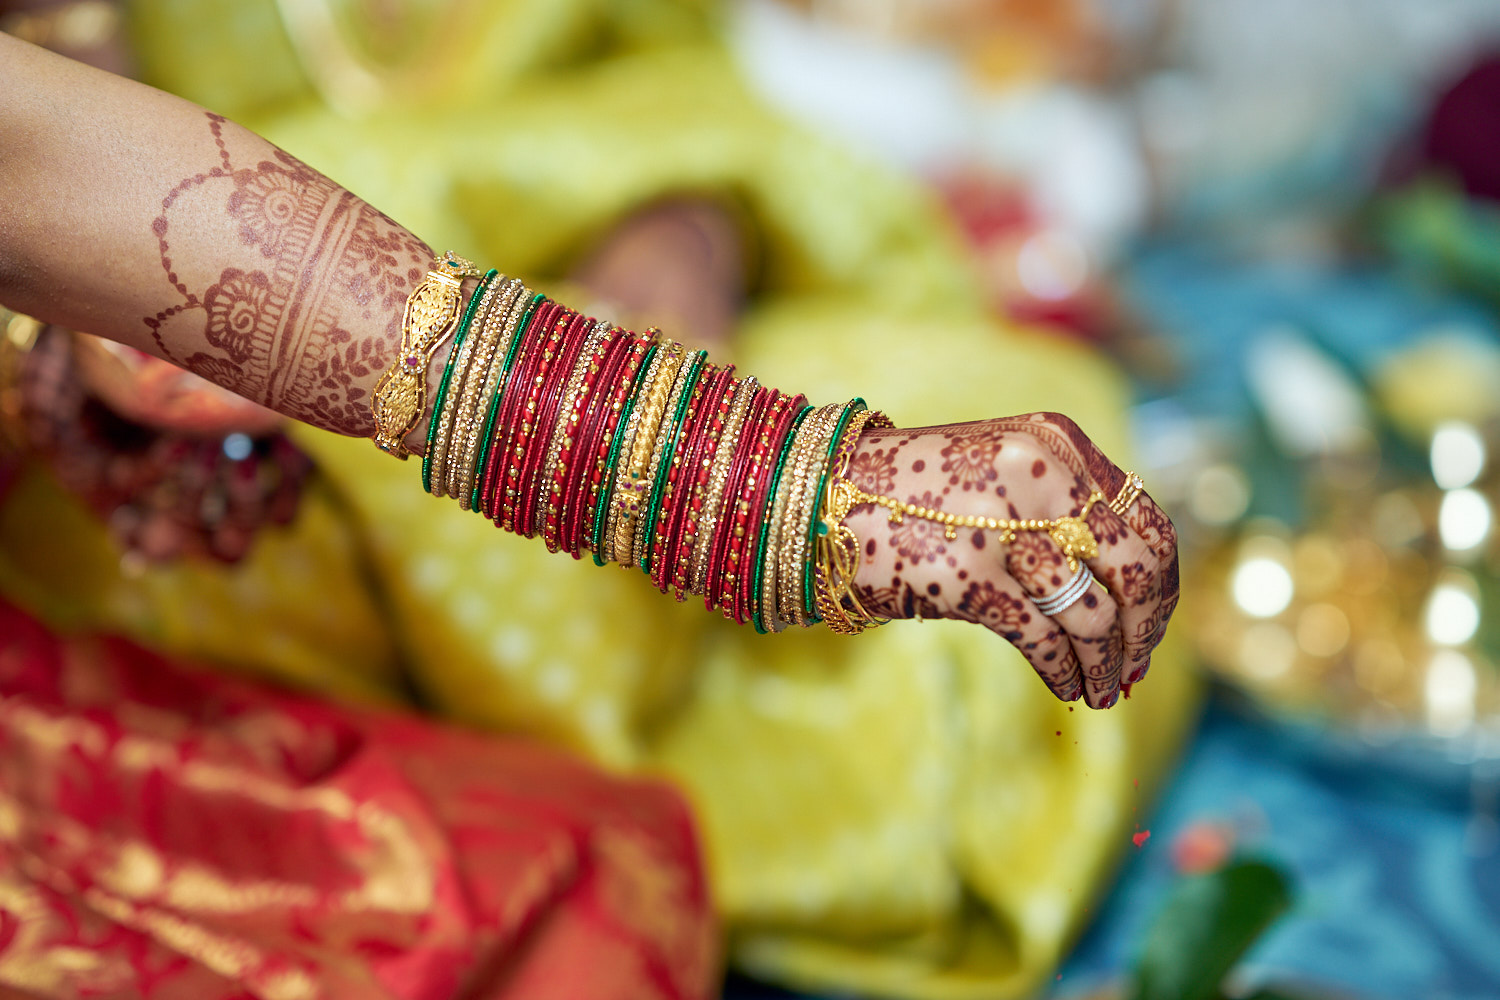 south-indian-wedding-ceremony-photography-by-afewgoodclicks-net-in-saratoga 22.jpg